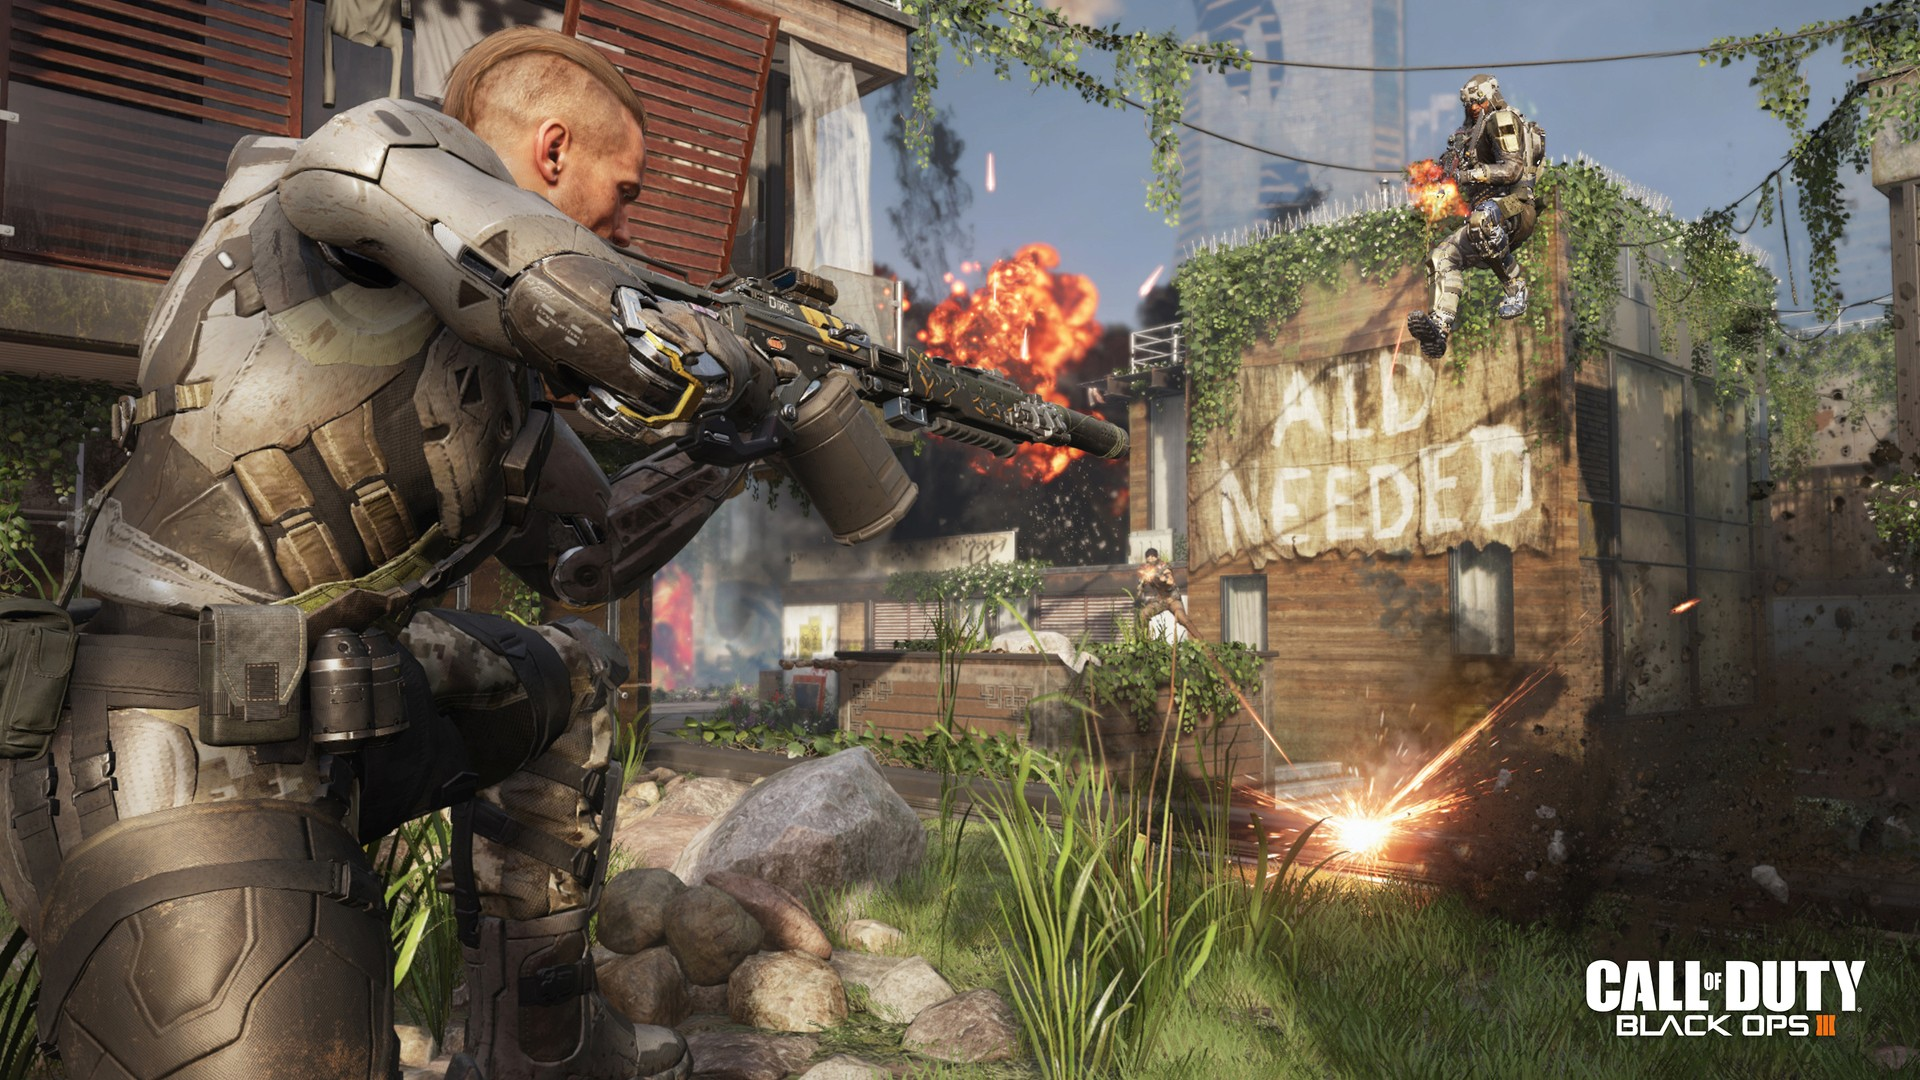 Call of Duty Black Ops 3 is a surprise free PlayStation Plus game     Call of Duty Black Ops 3 is a surprise free PlayStation Plus game this  month   TechRadar